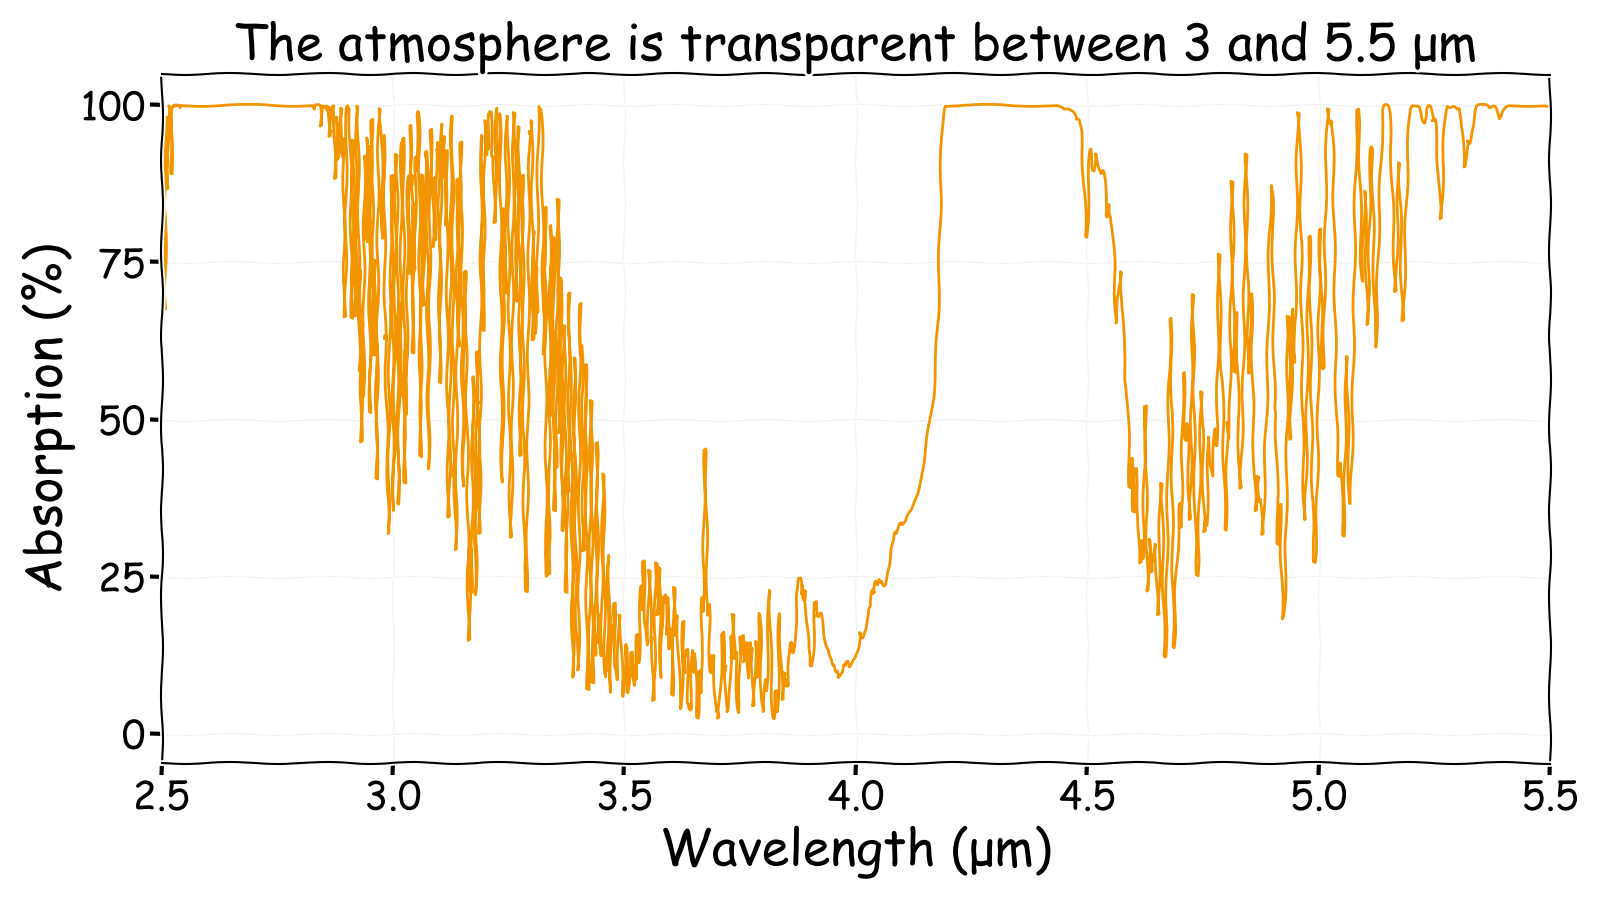 Mid wave infrared atmospheric absorption spectrum